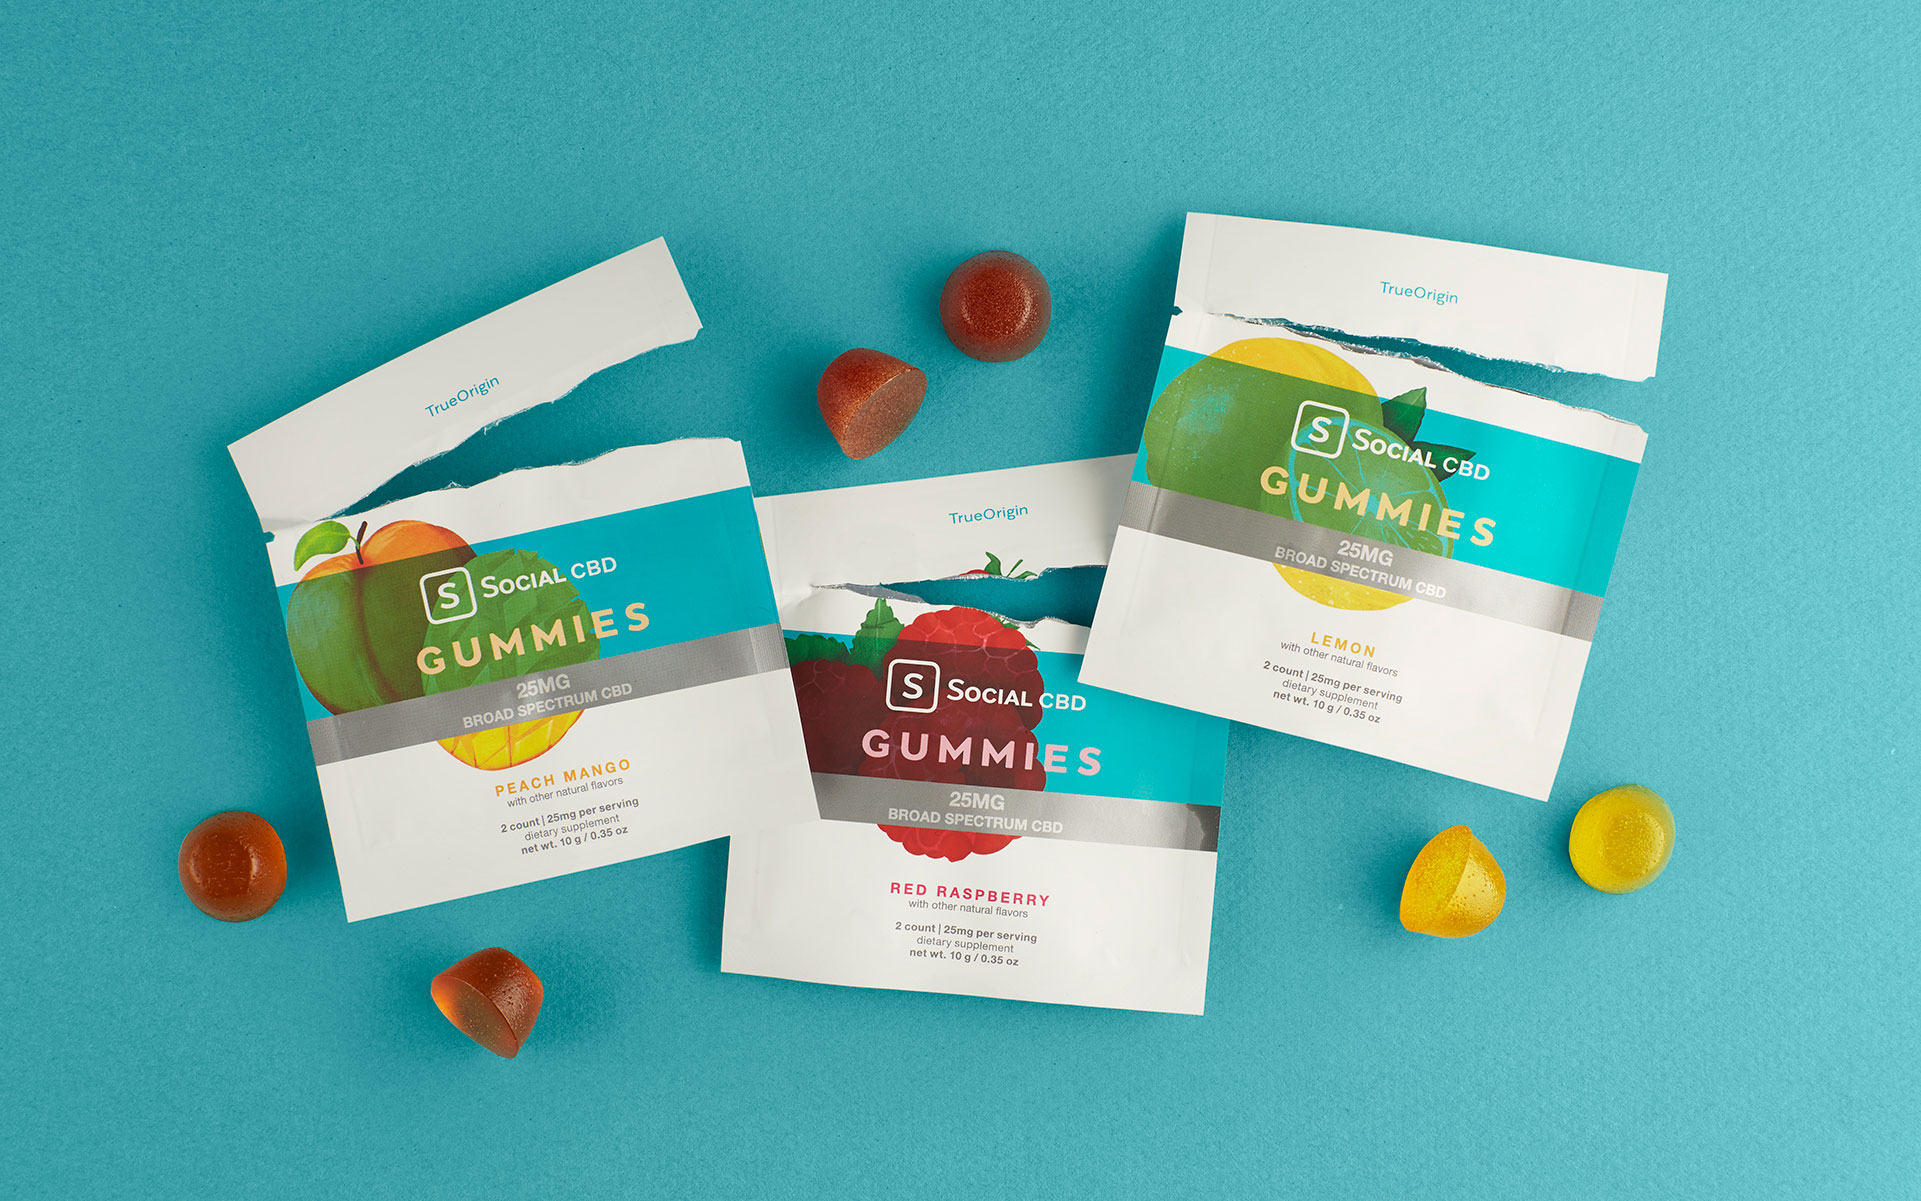 broad spectrum cbd gummies, cbd edibles